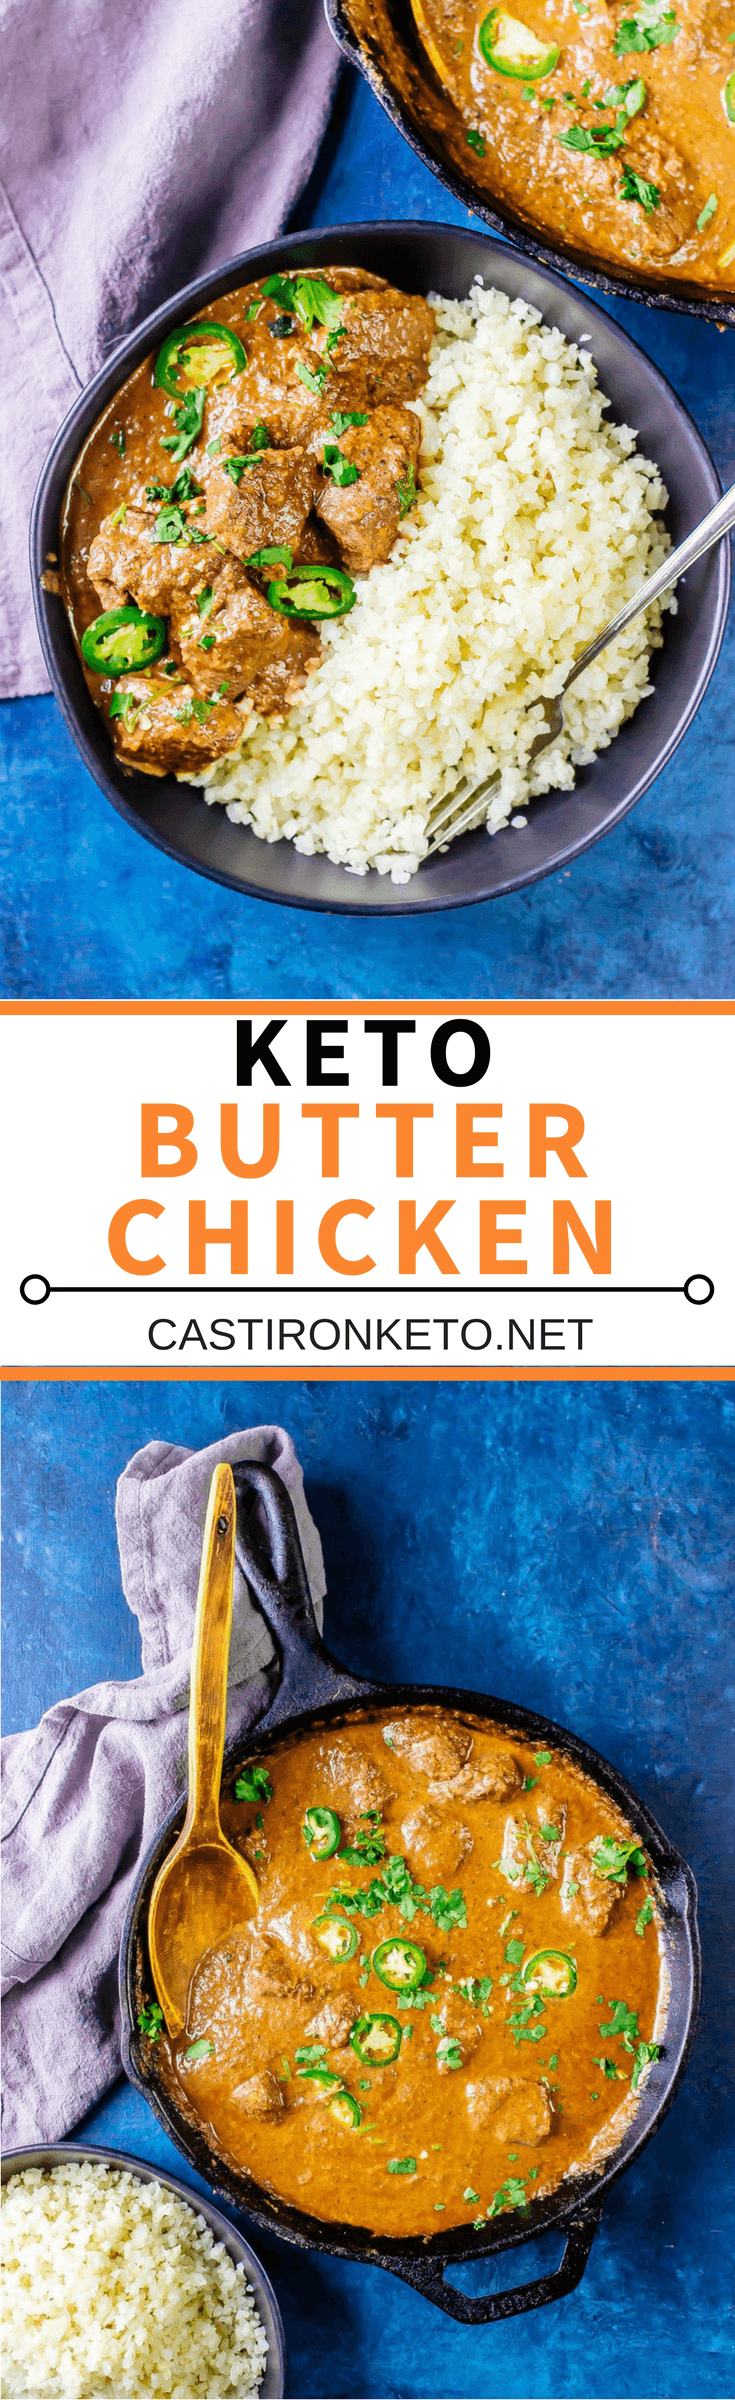 Keto butter chicken this recipe is easy delicious and low carb food forumfinder Images